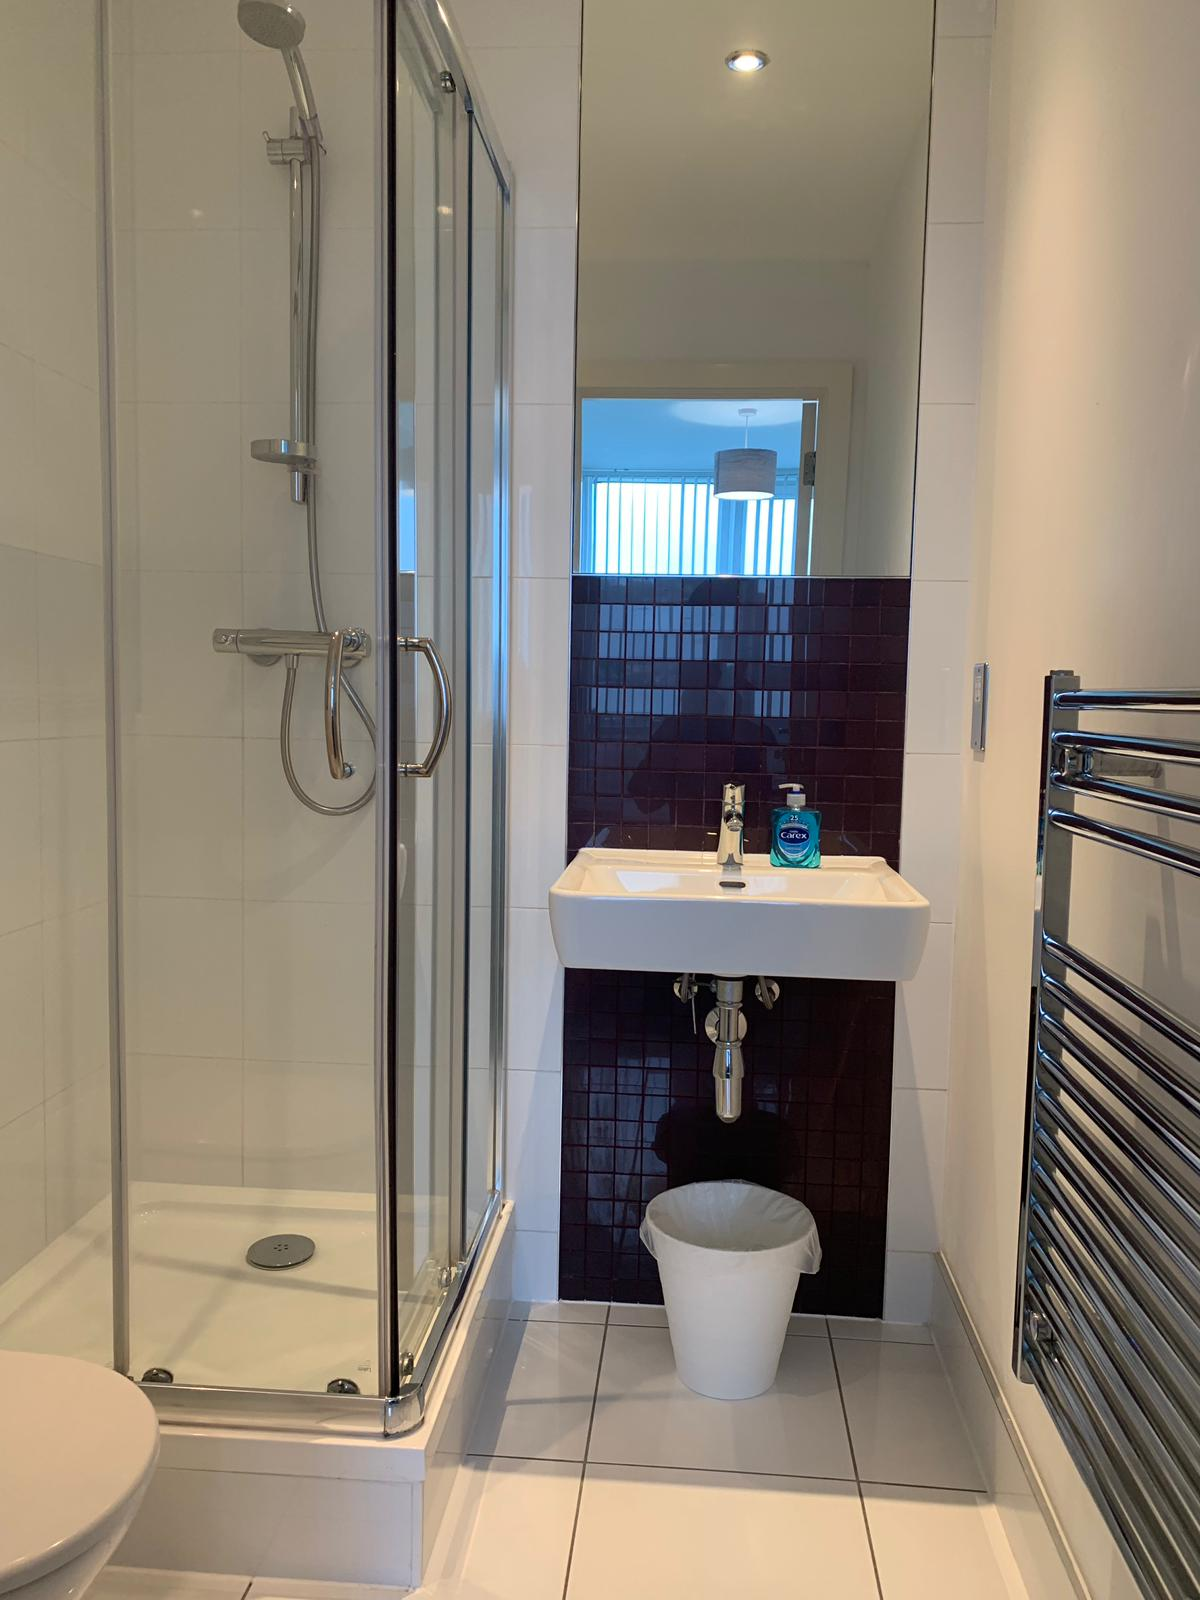 Shower at KD Tower Serviced Apartments